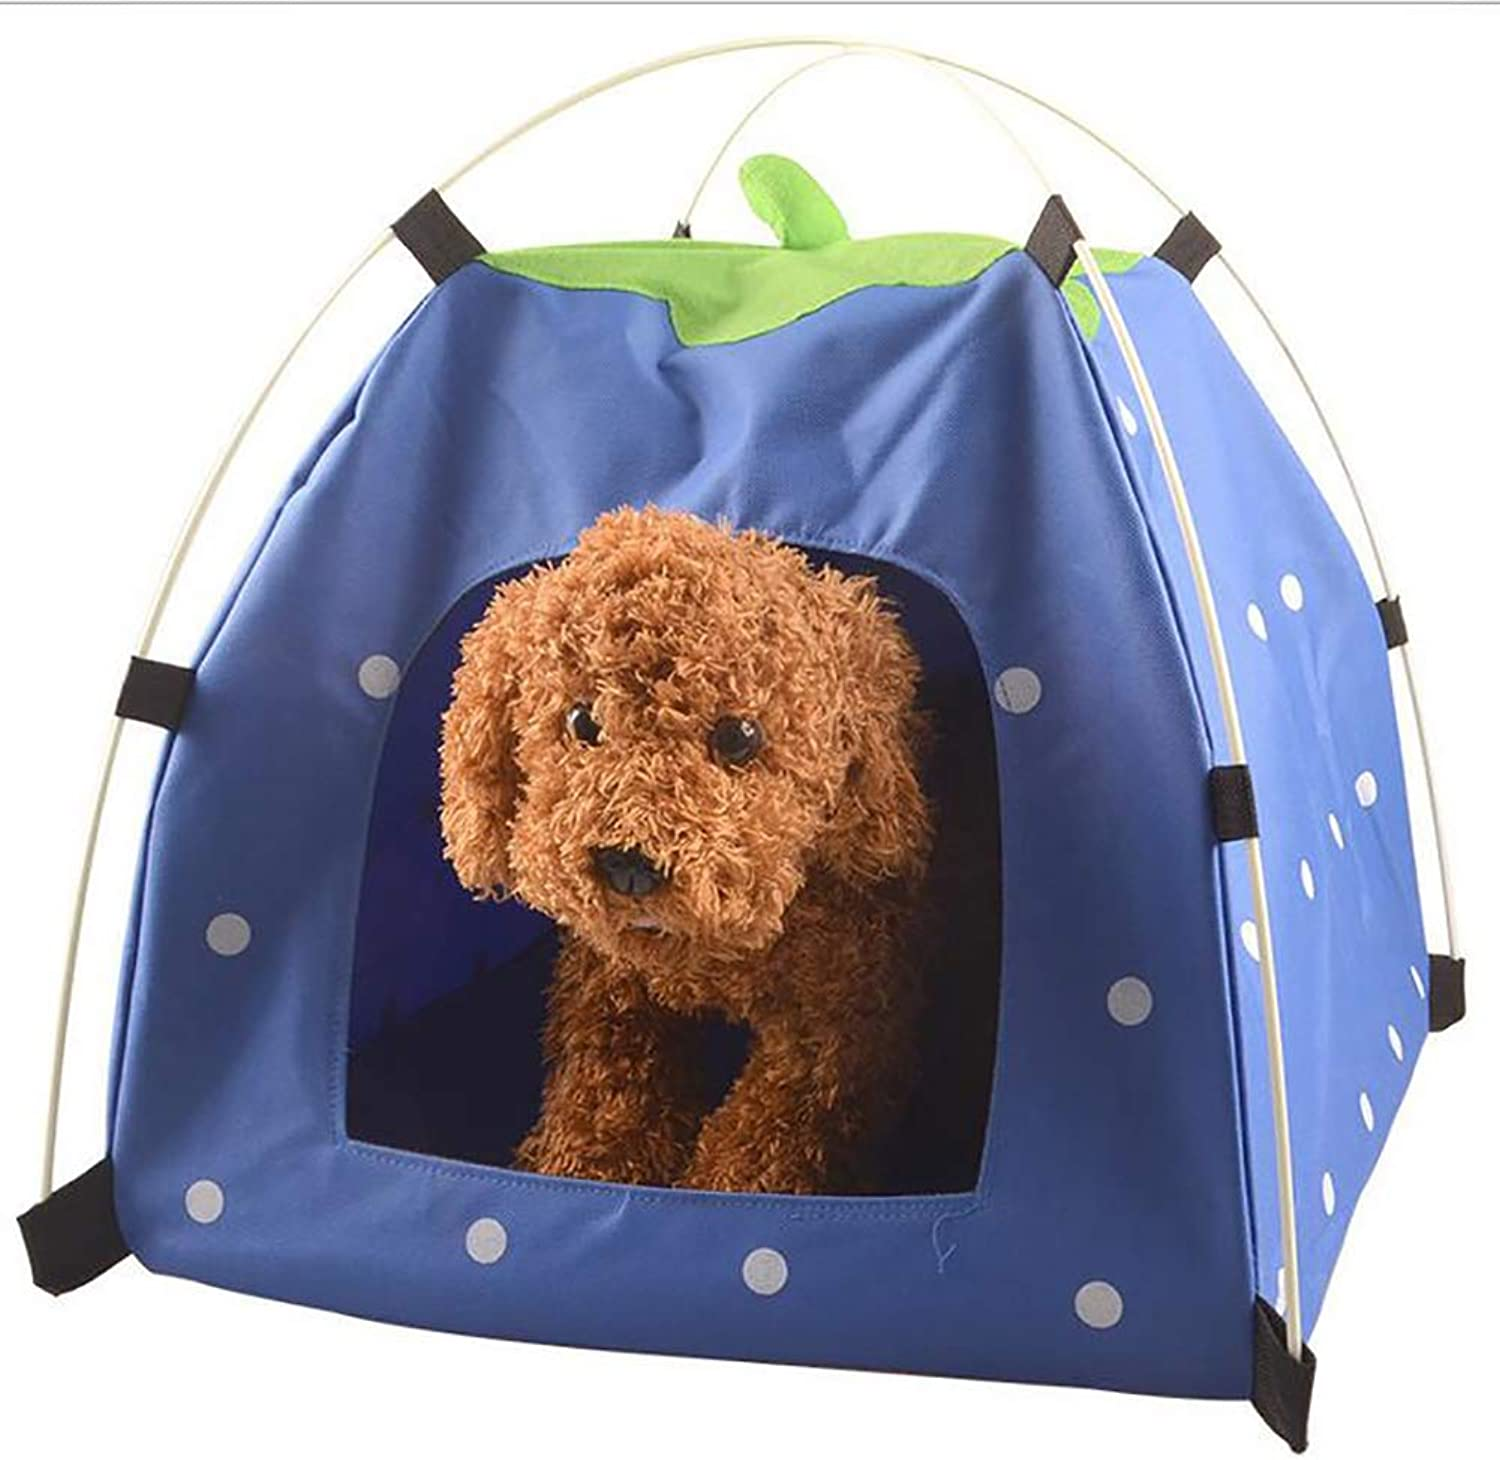 Portable Pet Tent, Washable Folding Pet Tent Camping Shelter,Durable Four Seasons Universal, for Dogs and Cats,bluee